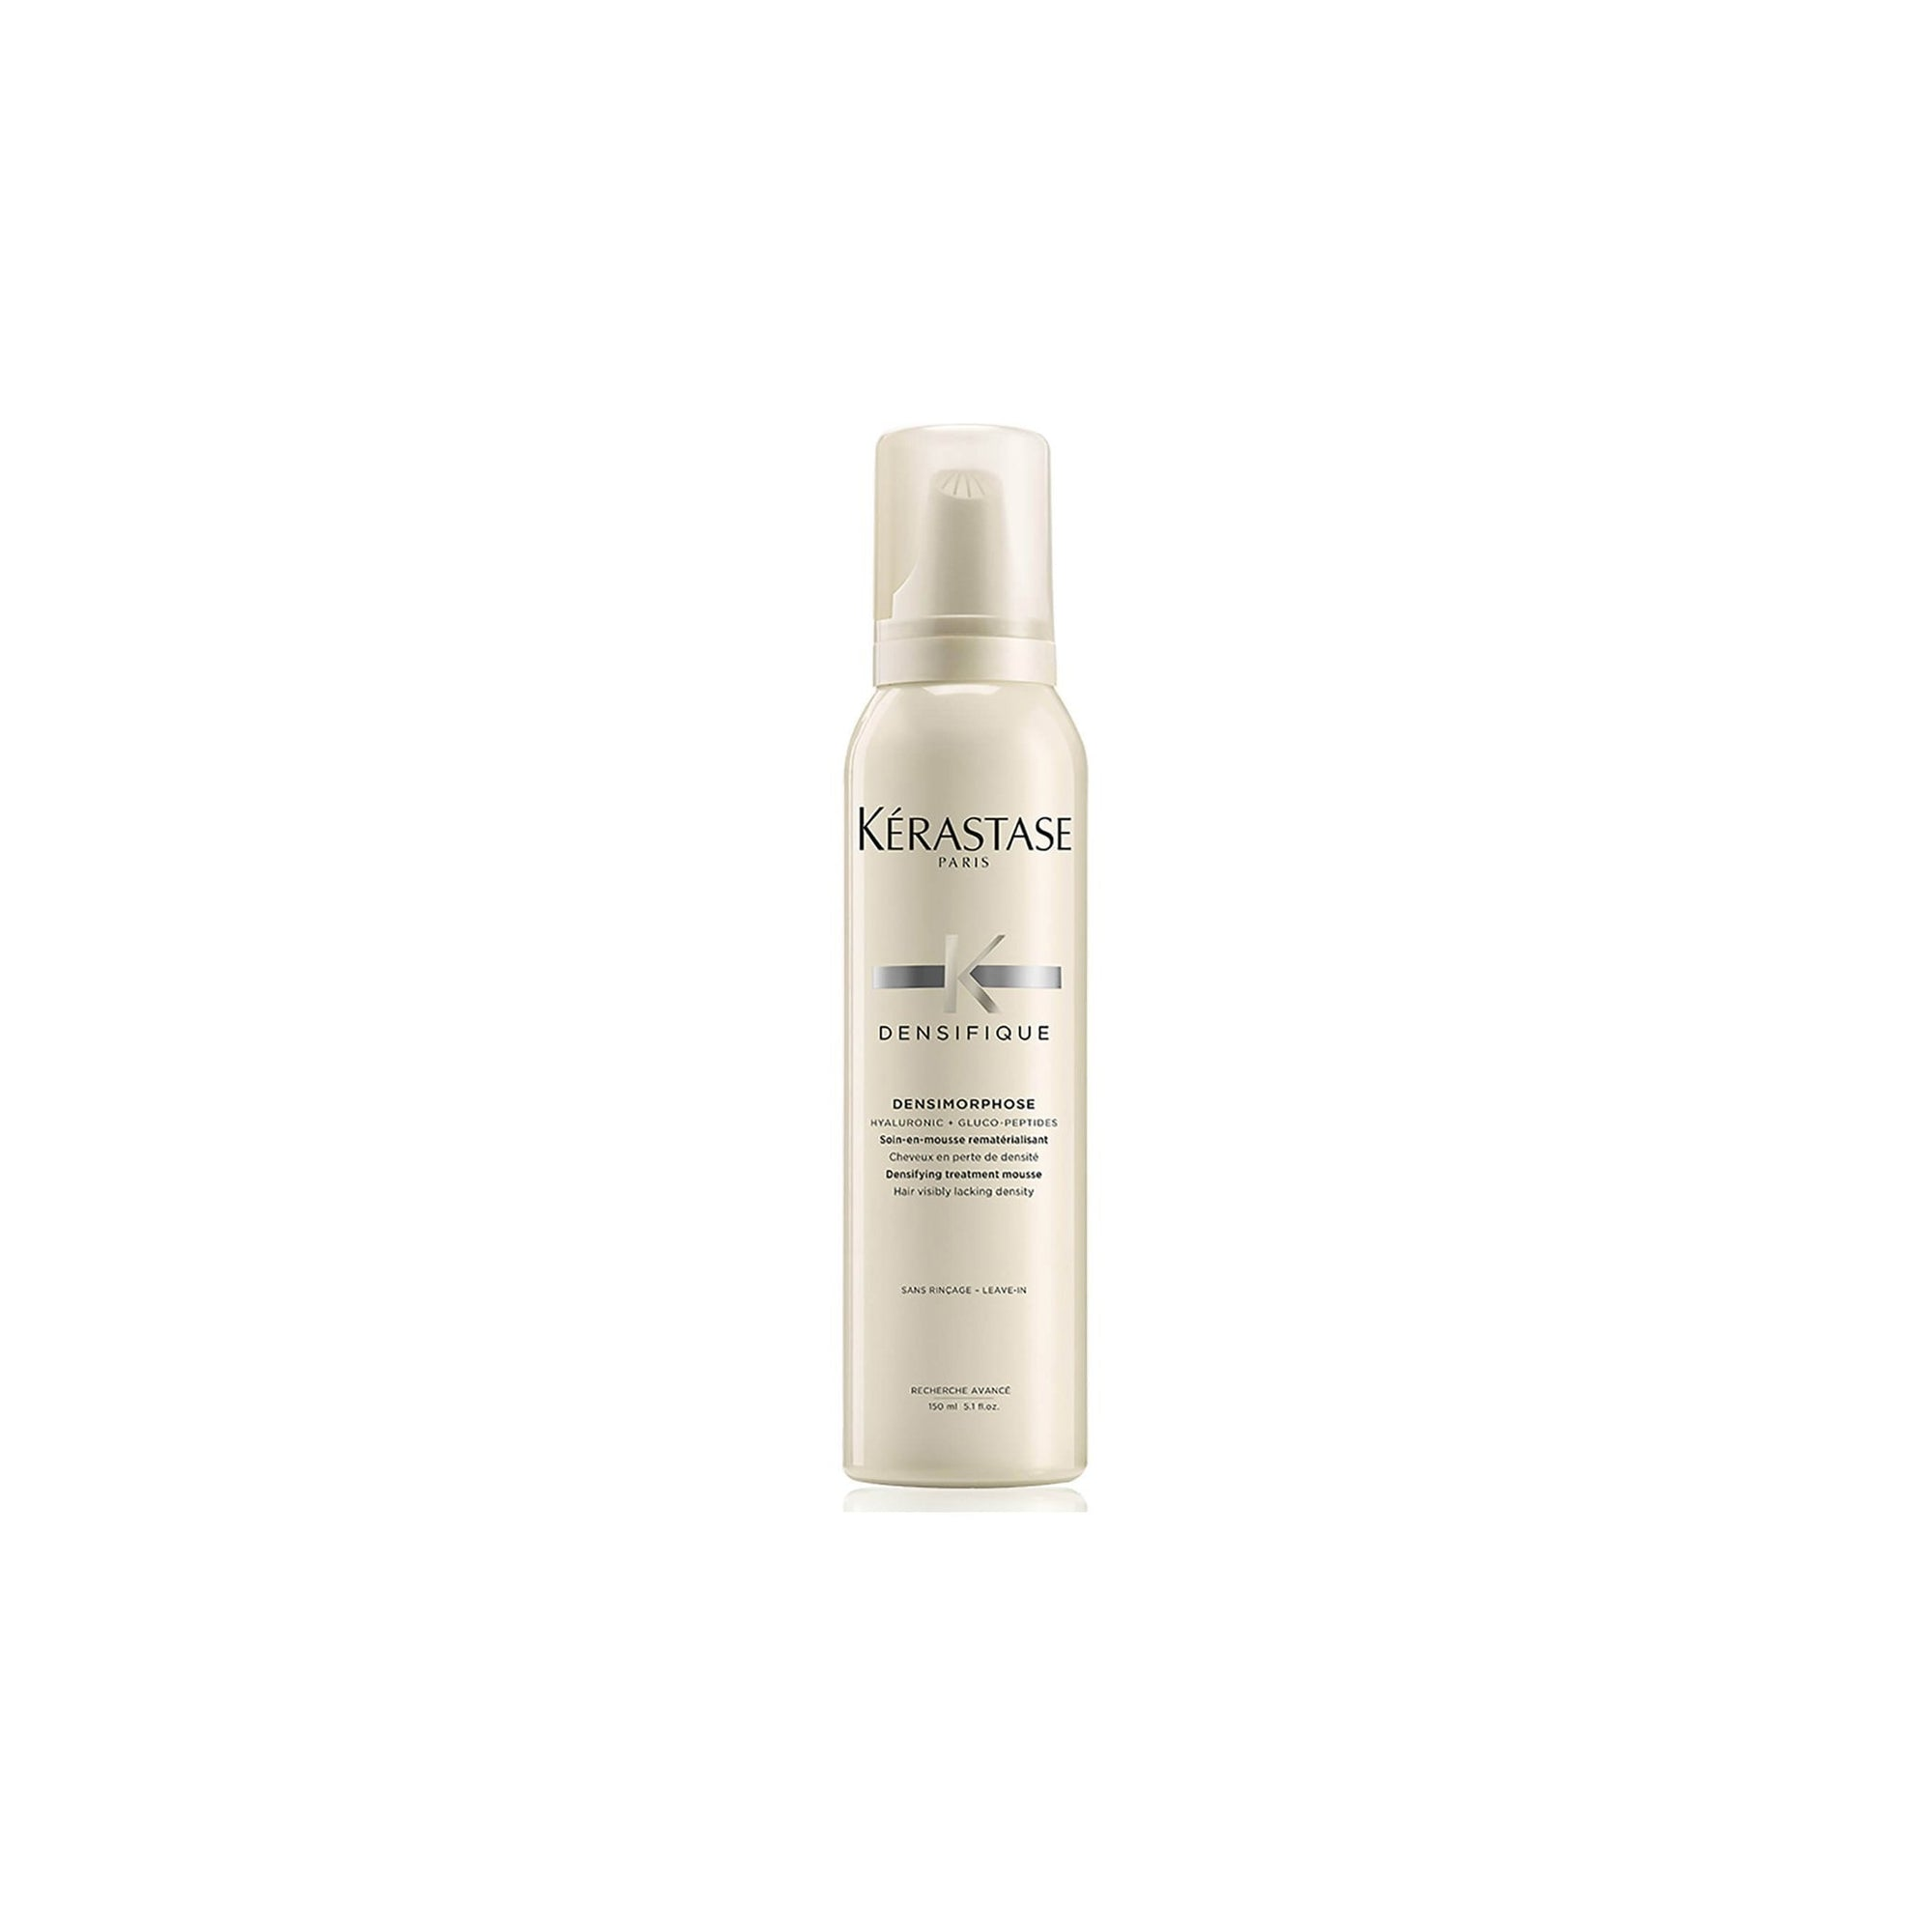 Kérastase Densifique Mousse 150ml